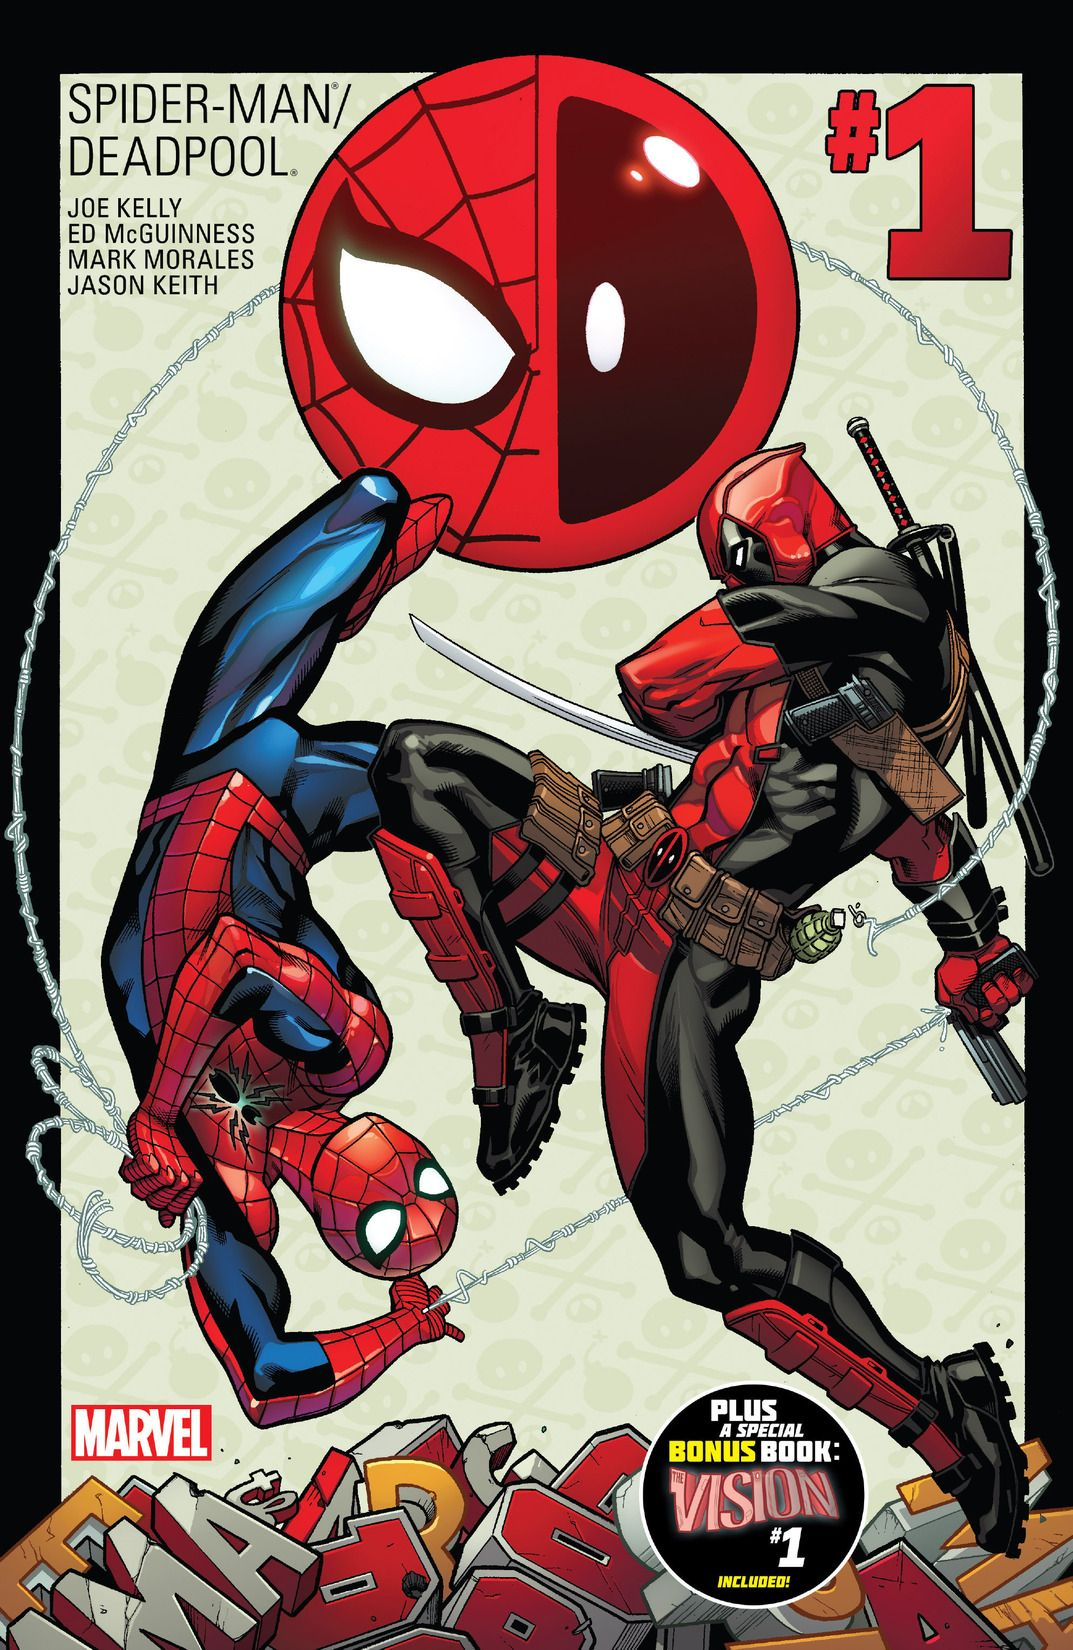 Spider-Man/Deadpool #1 Cover